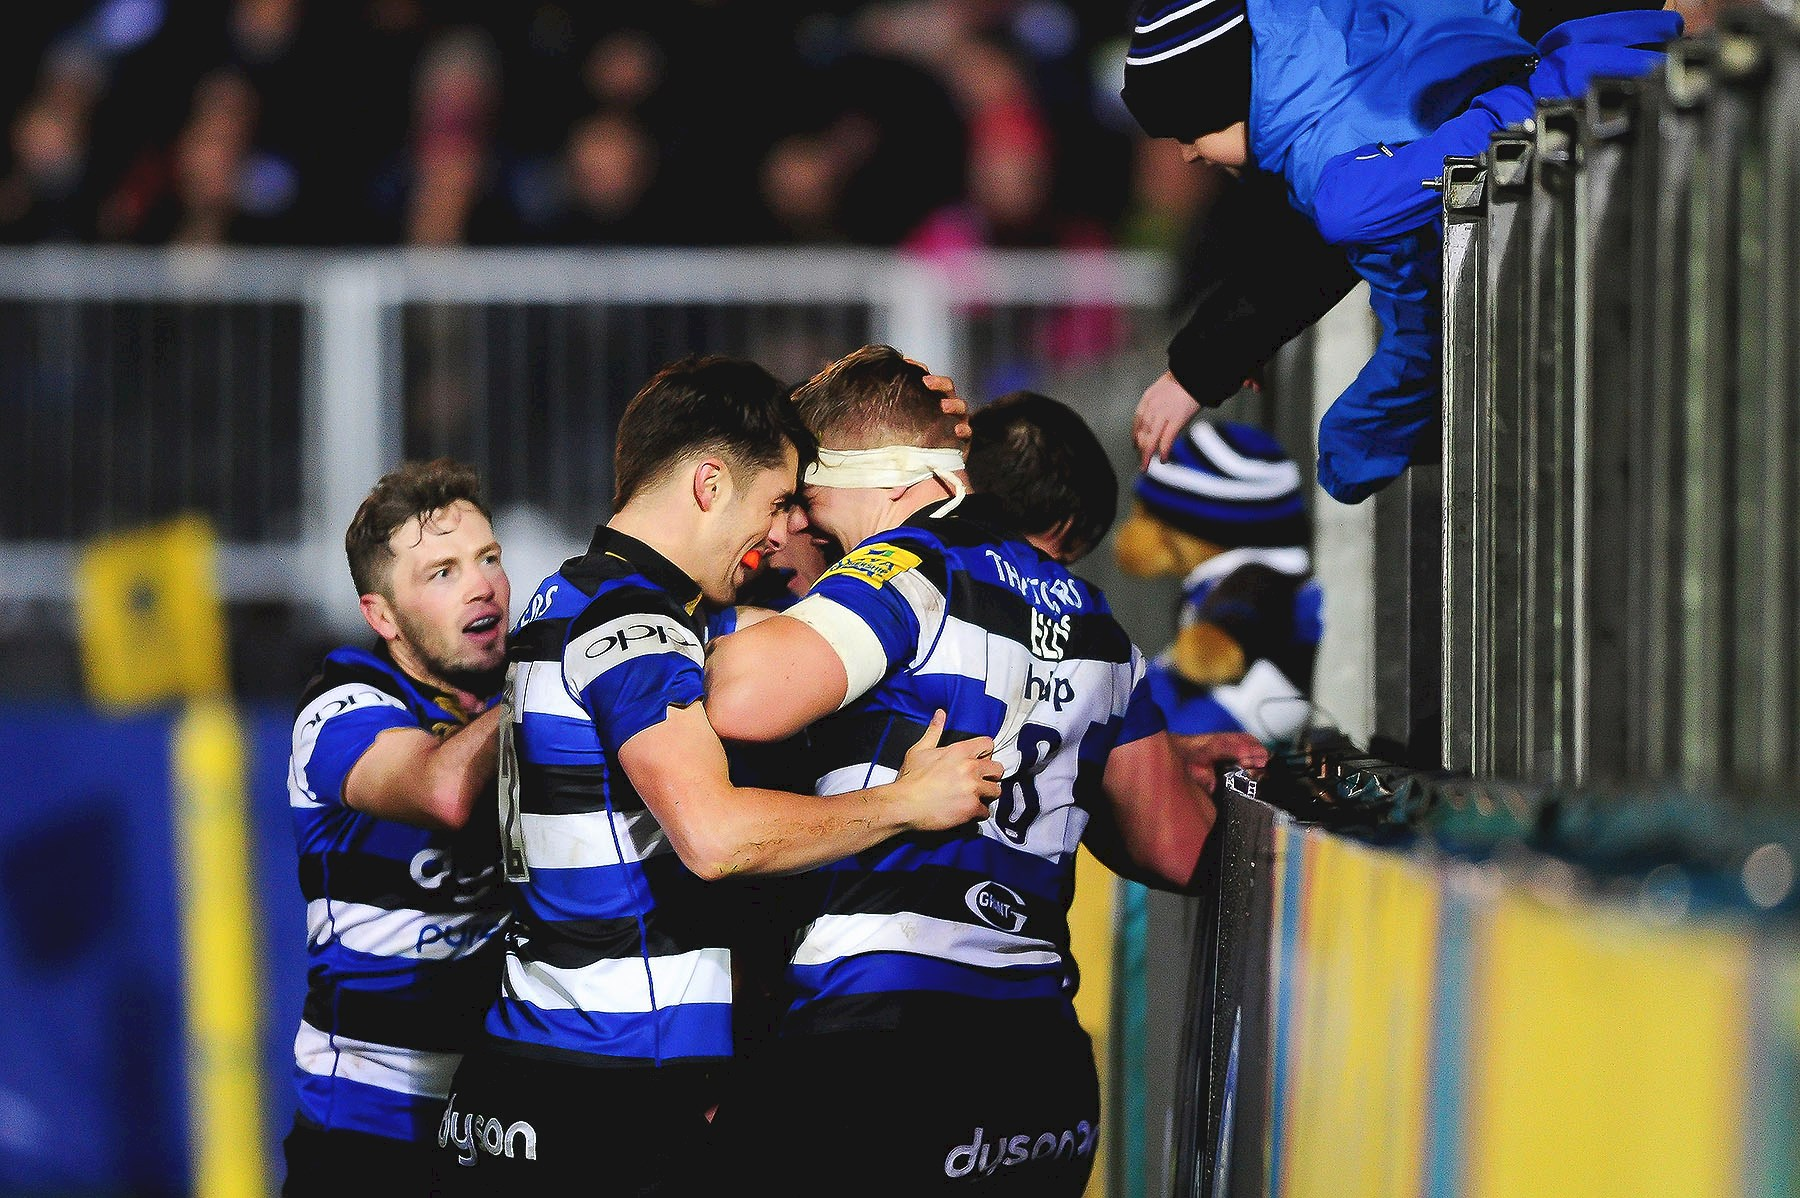 Bath Rugby v Bristol Rugby Match Review